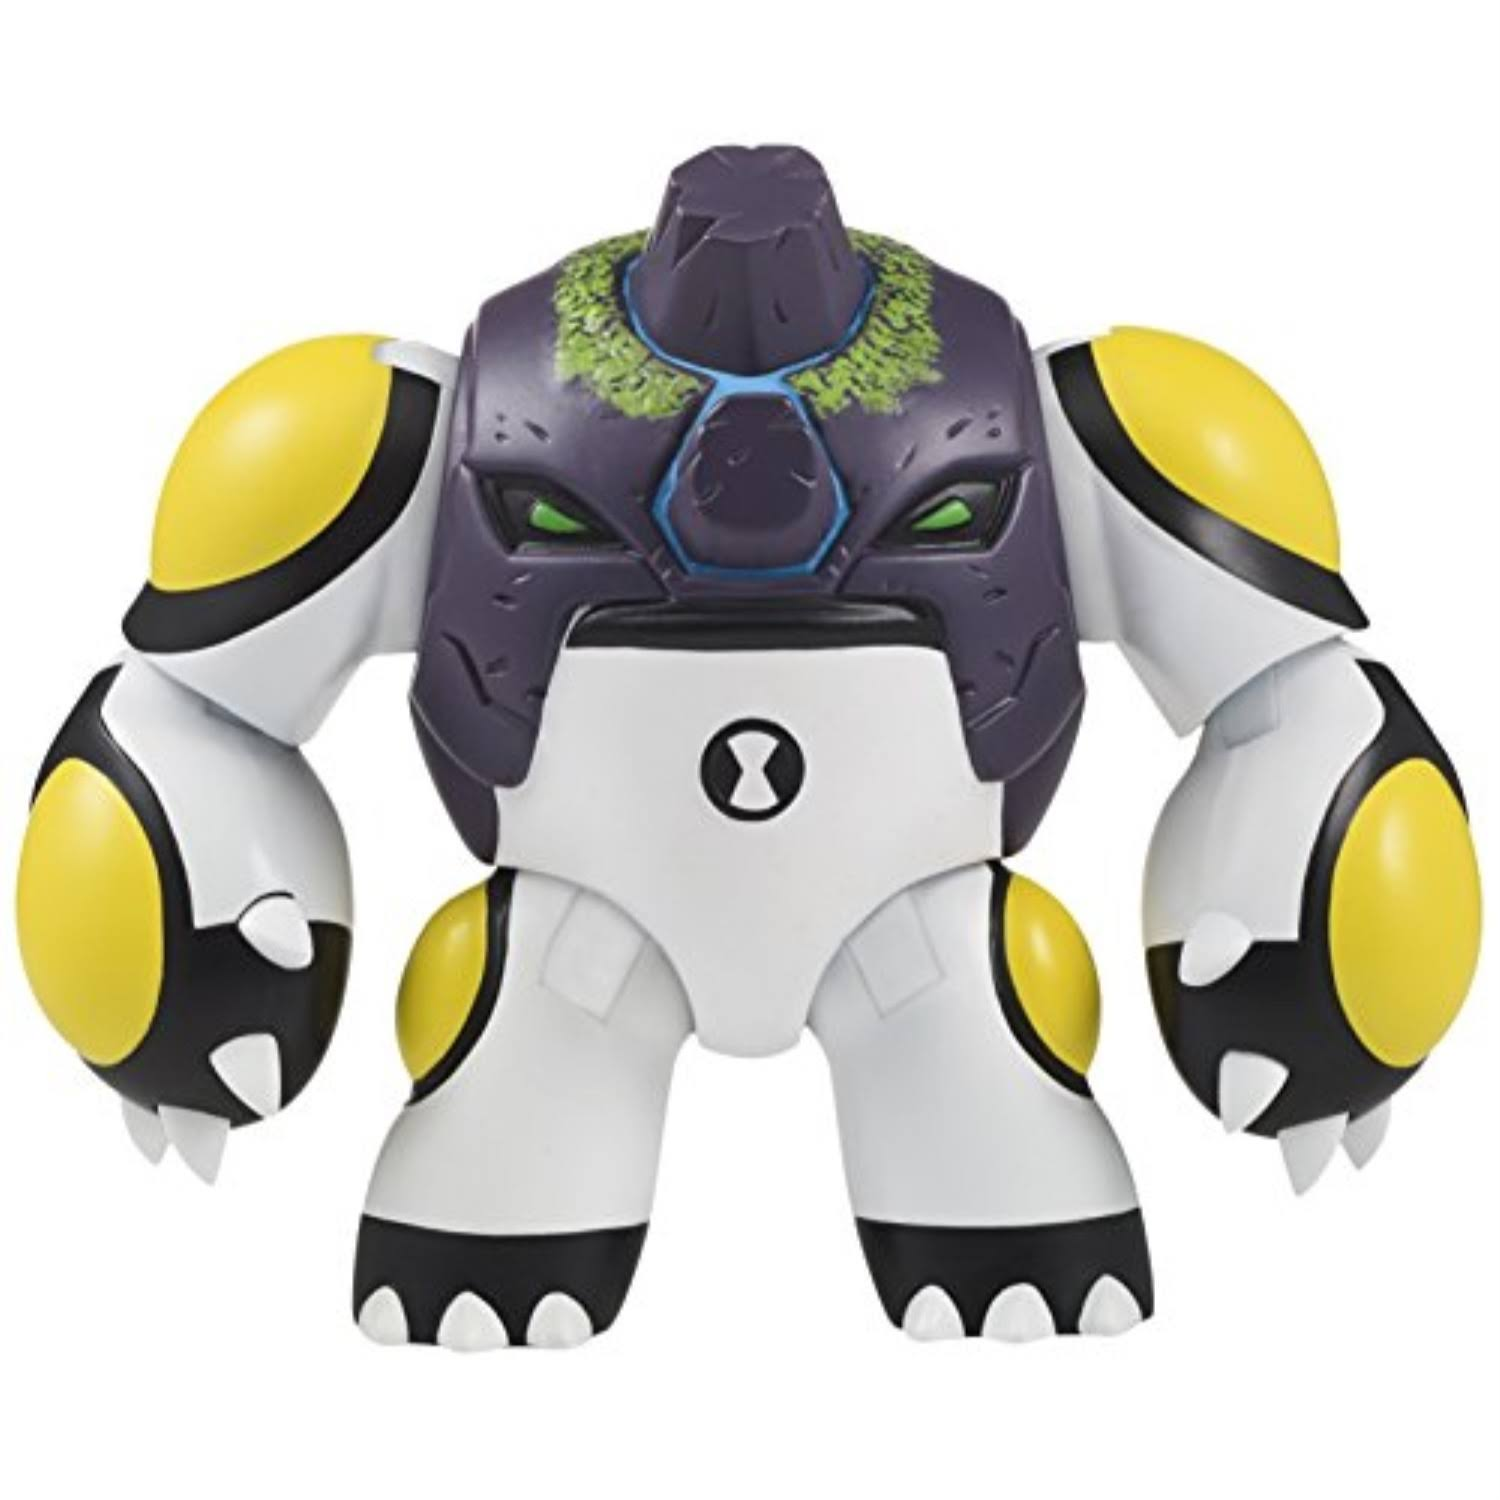 Ben 10 Basic Action Figure - OMNI-ENHANCED Cannonbolt